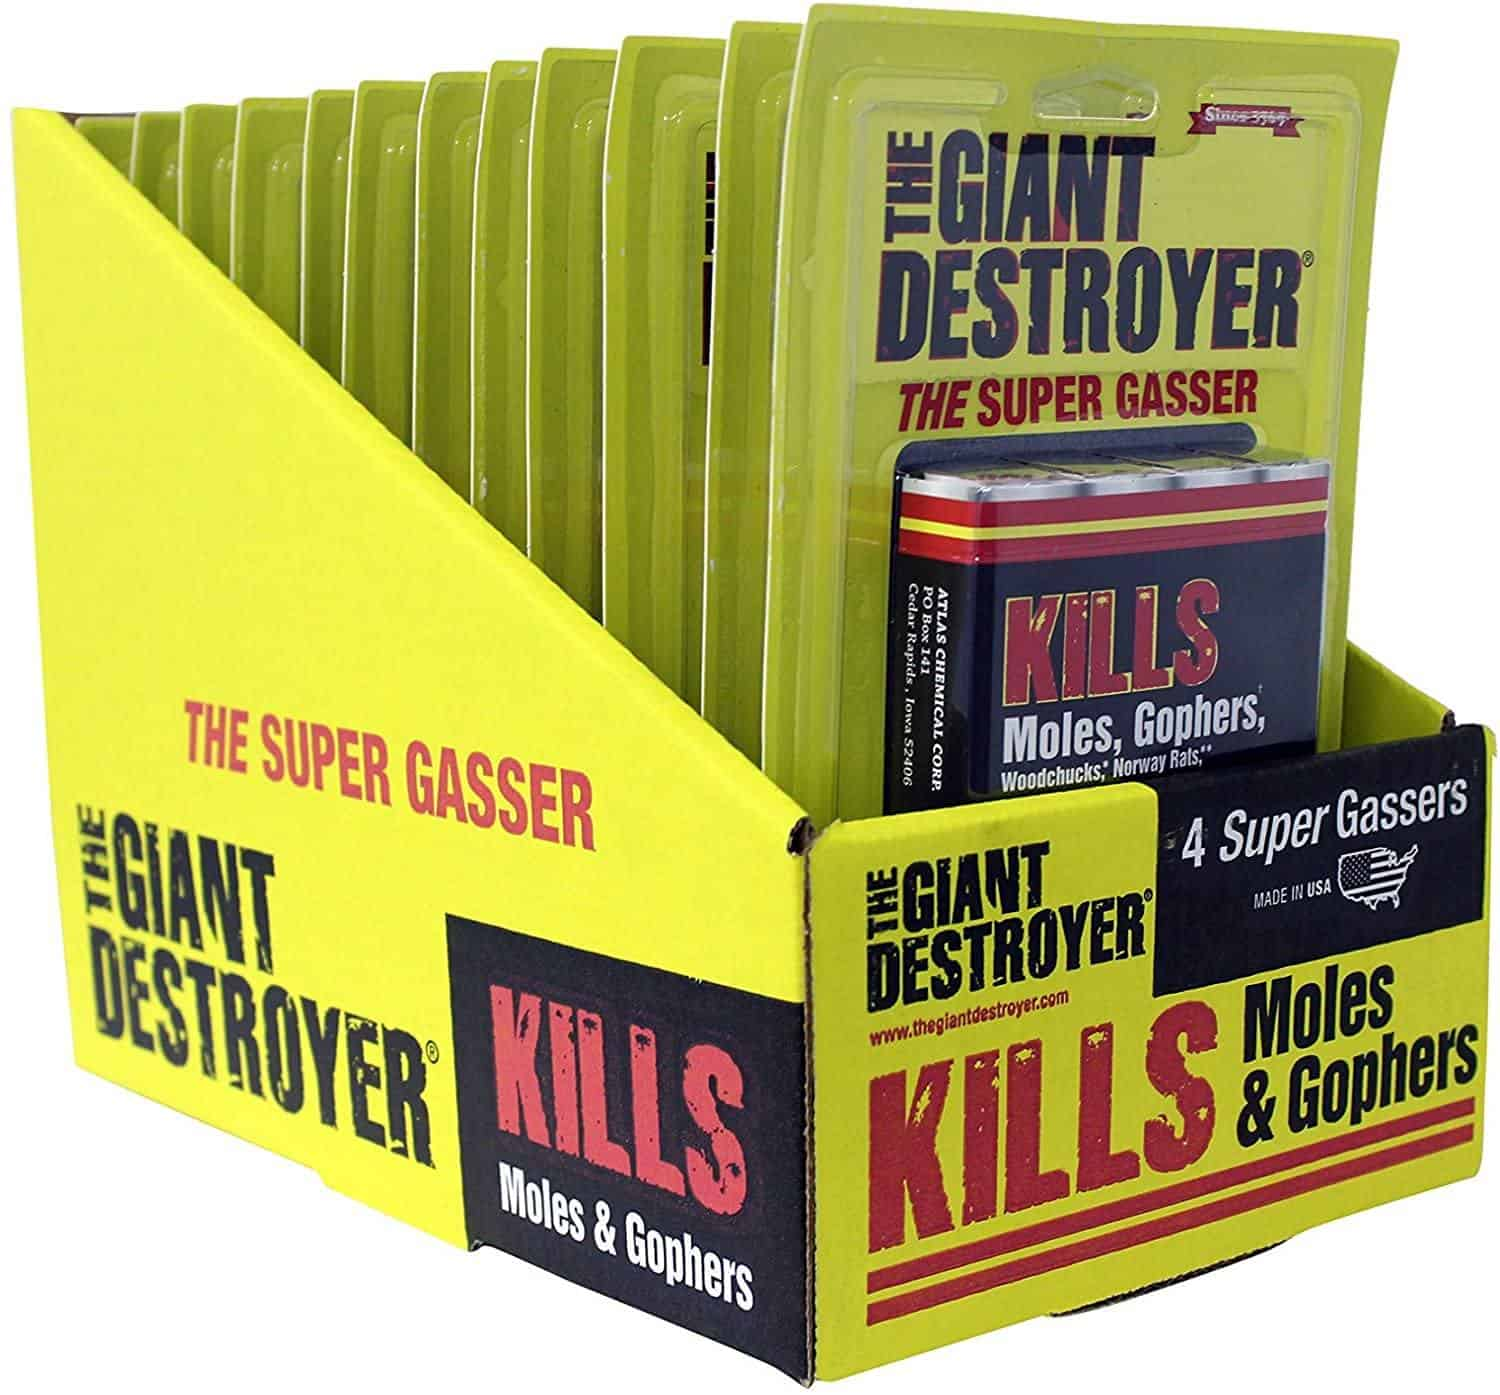 The Giant Destroyer (GAS KILLER) (12/4PK TOTAL)